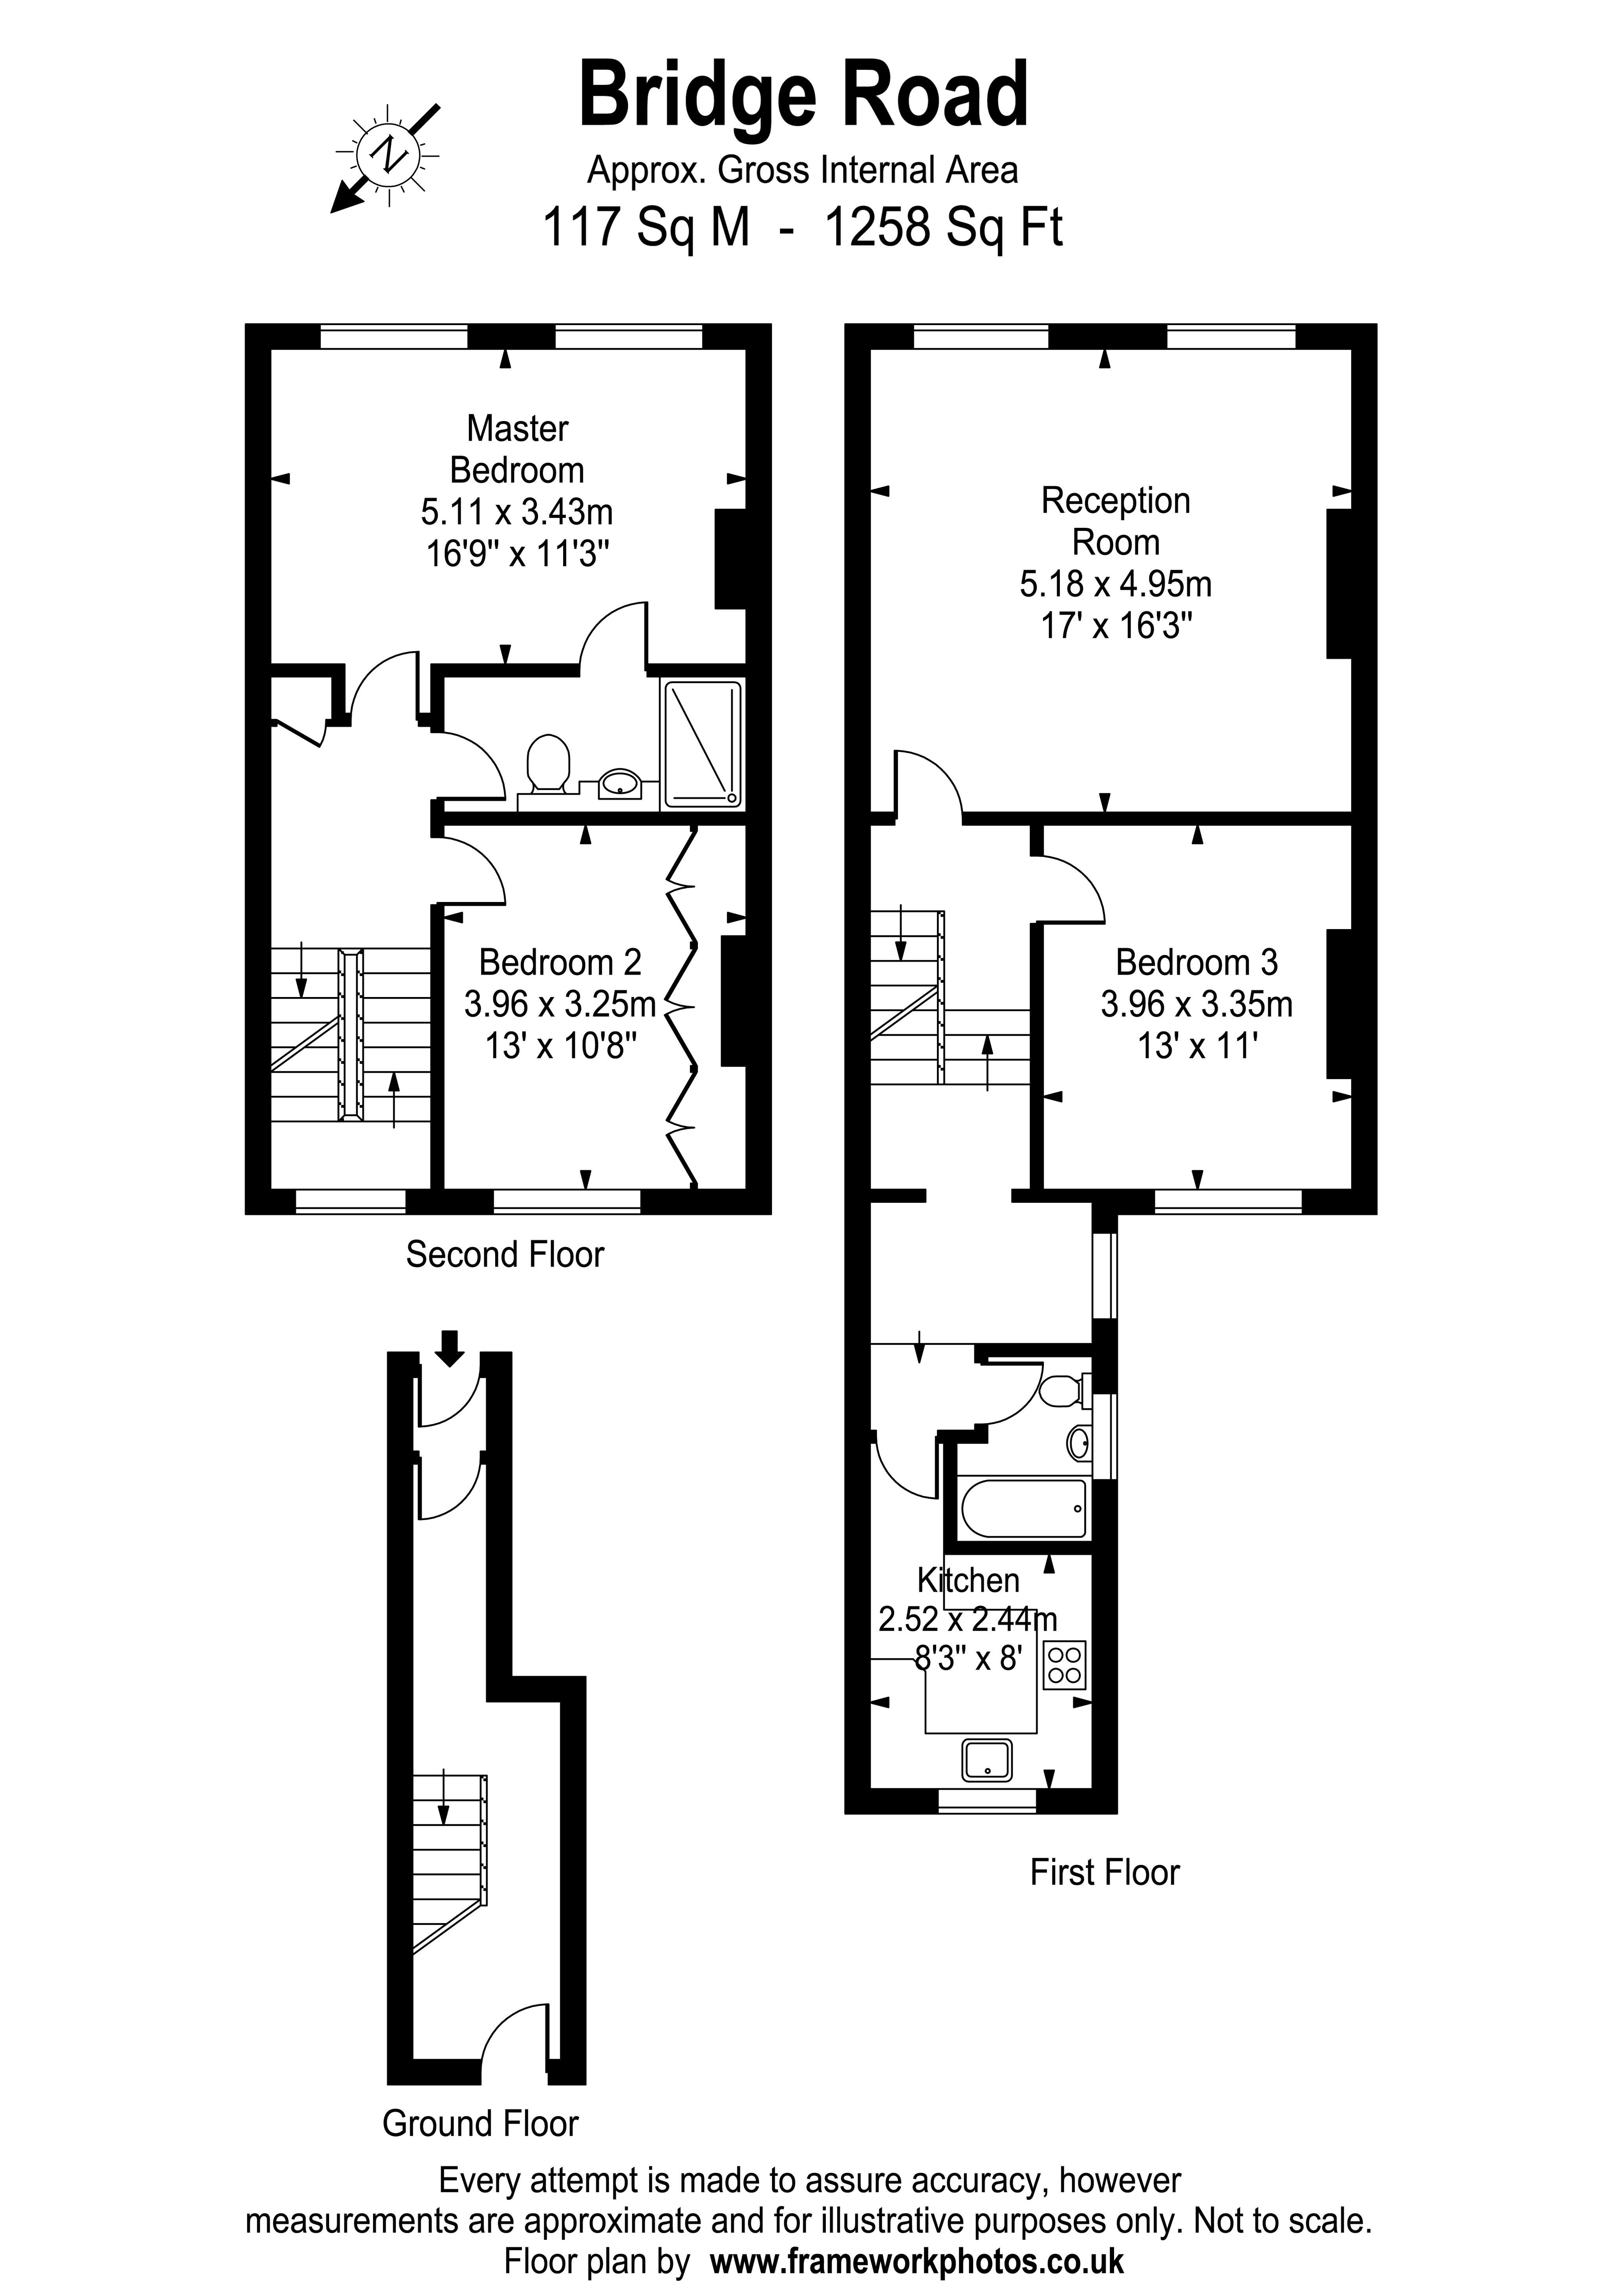 Floorplans For Bridge Road, Hampton Court / East Molesey